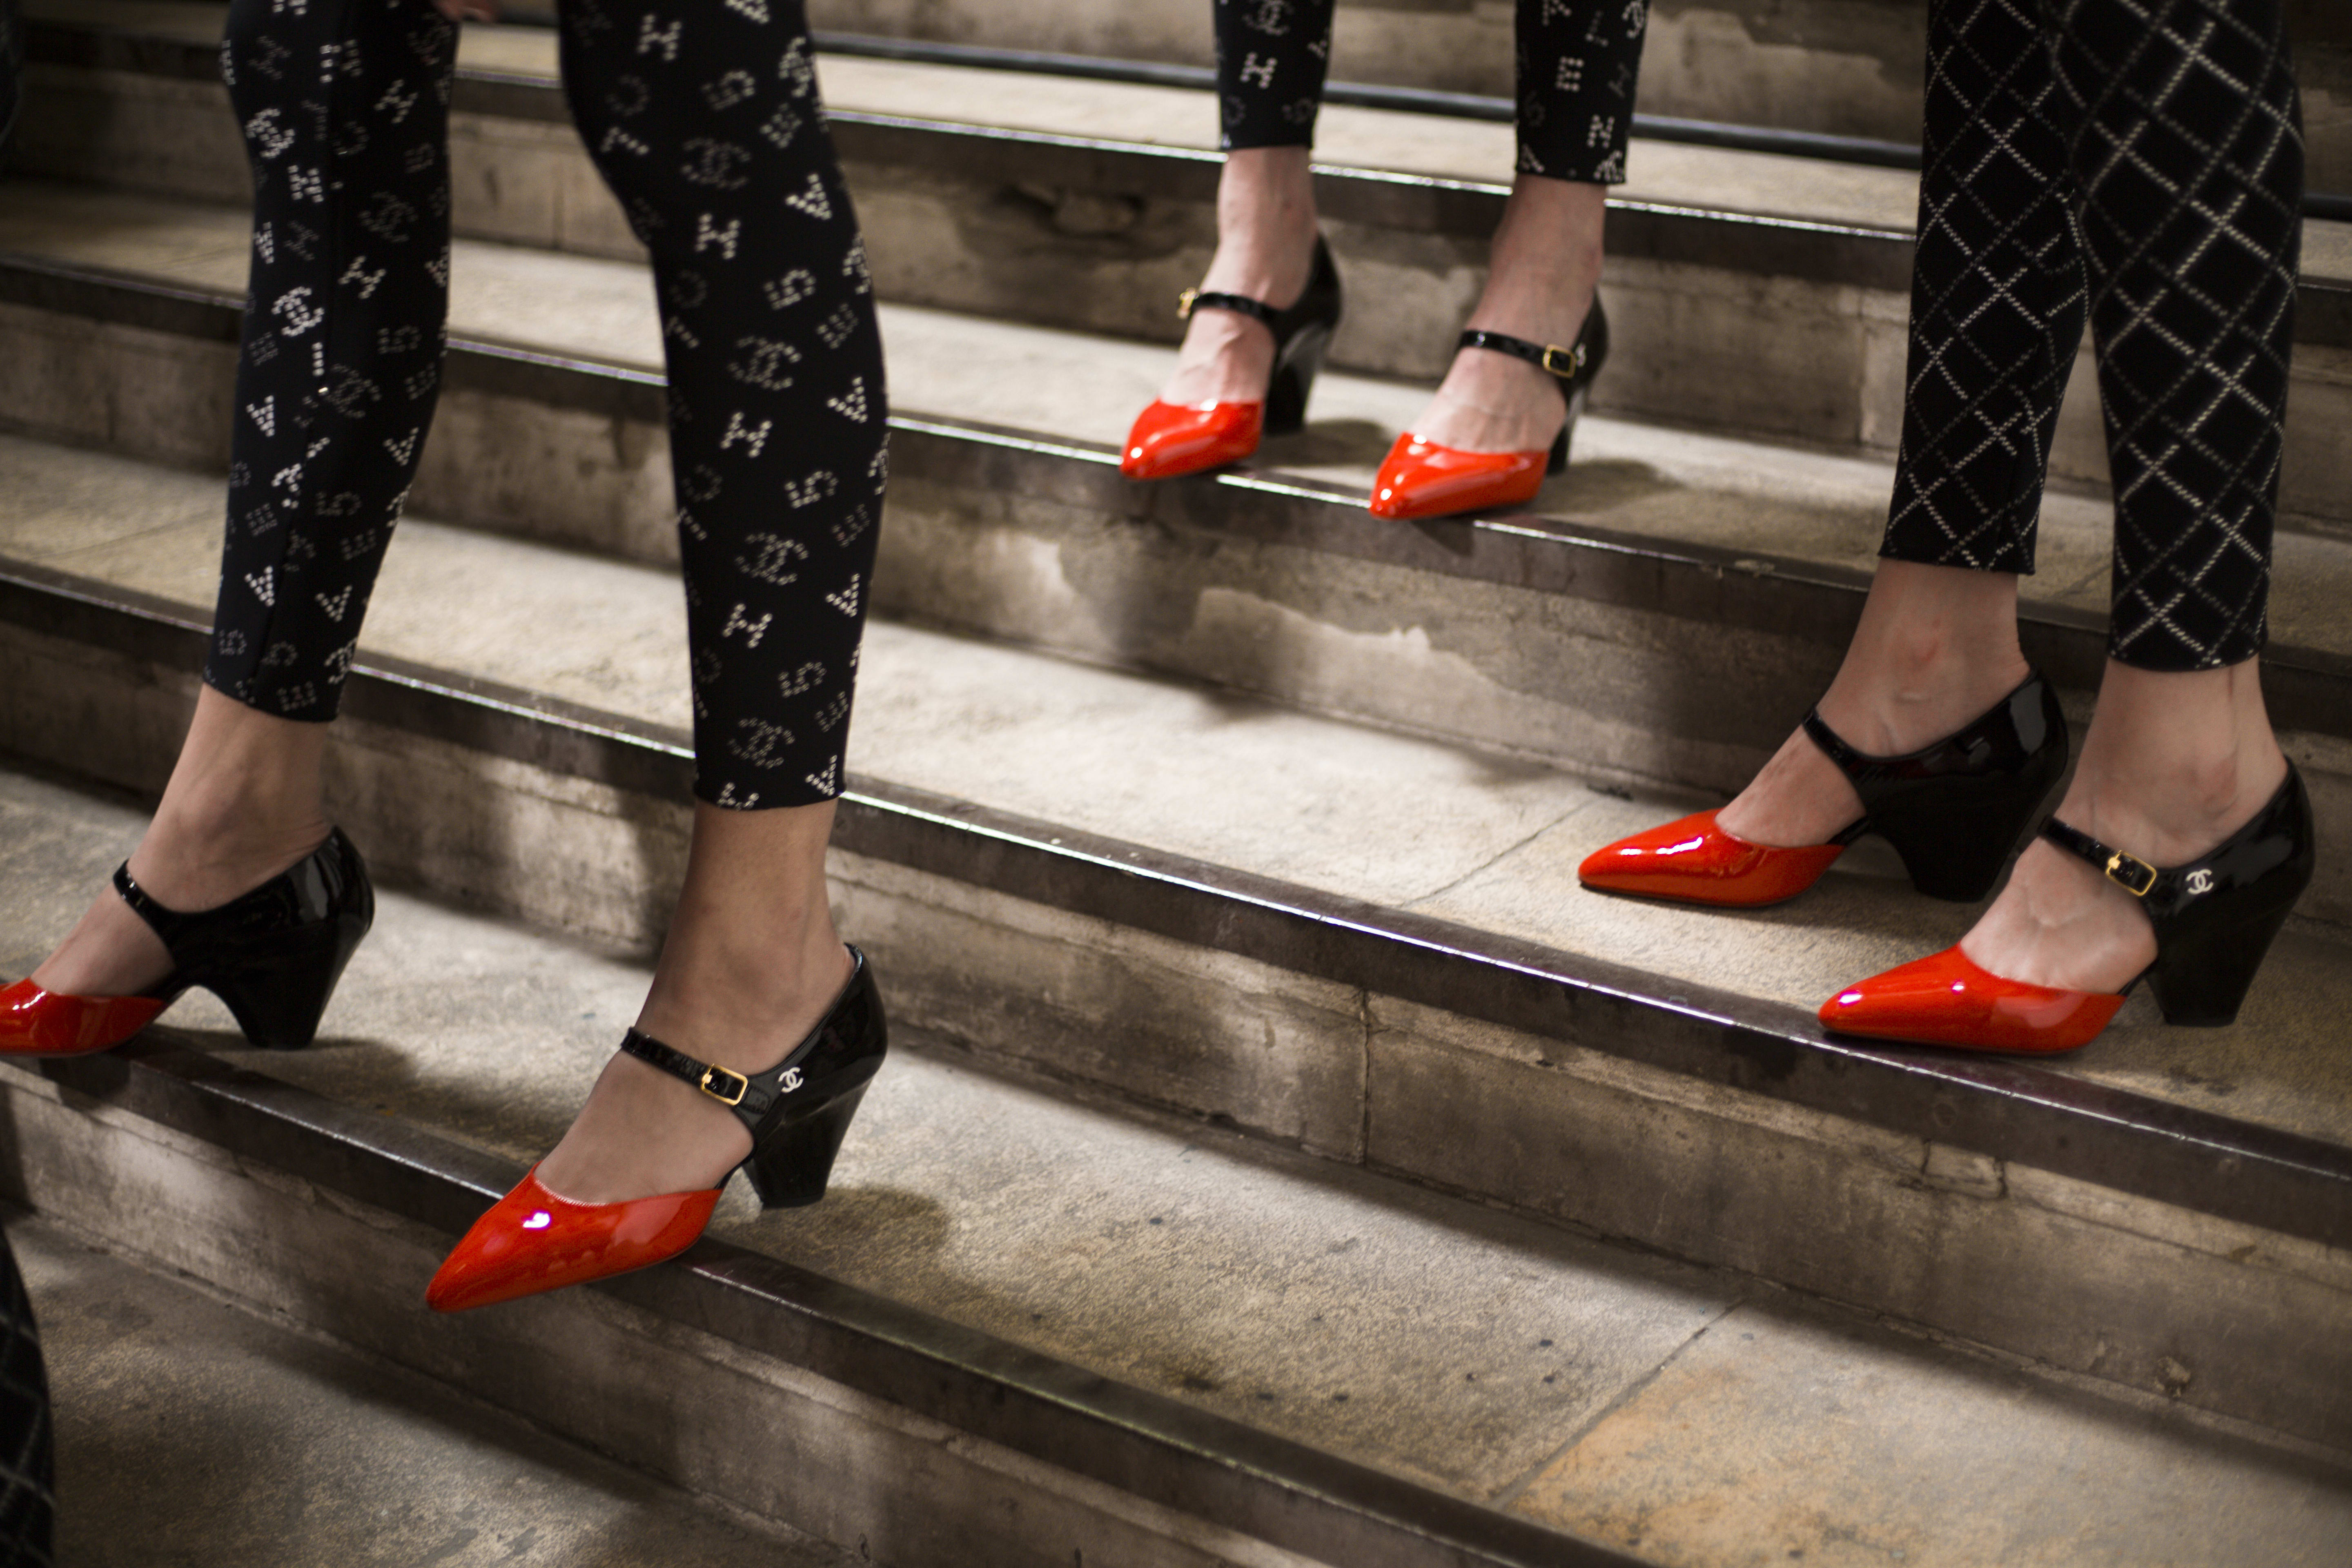 TWO-TONE PUMPS CRUISE 2019/20 - CHANEL